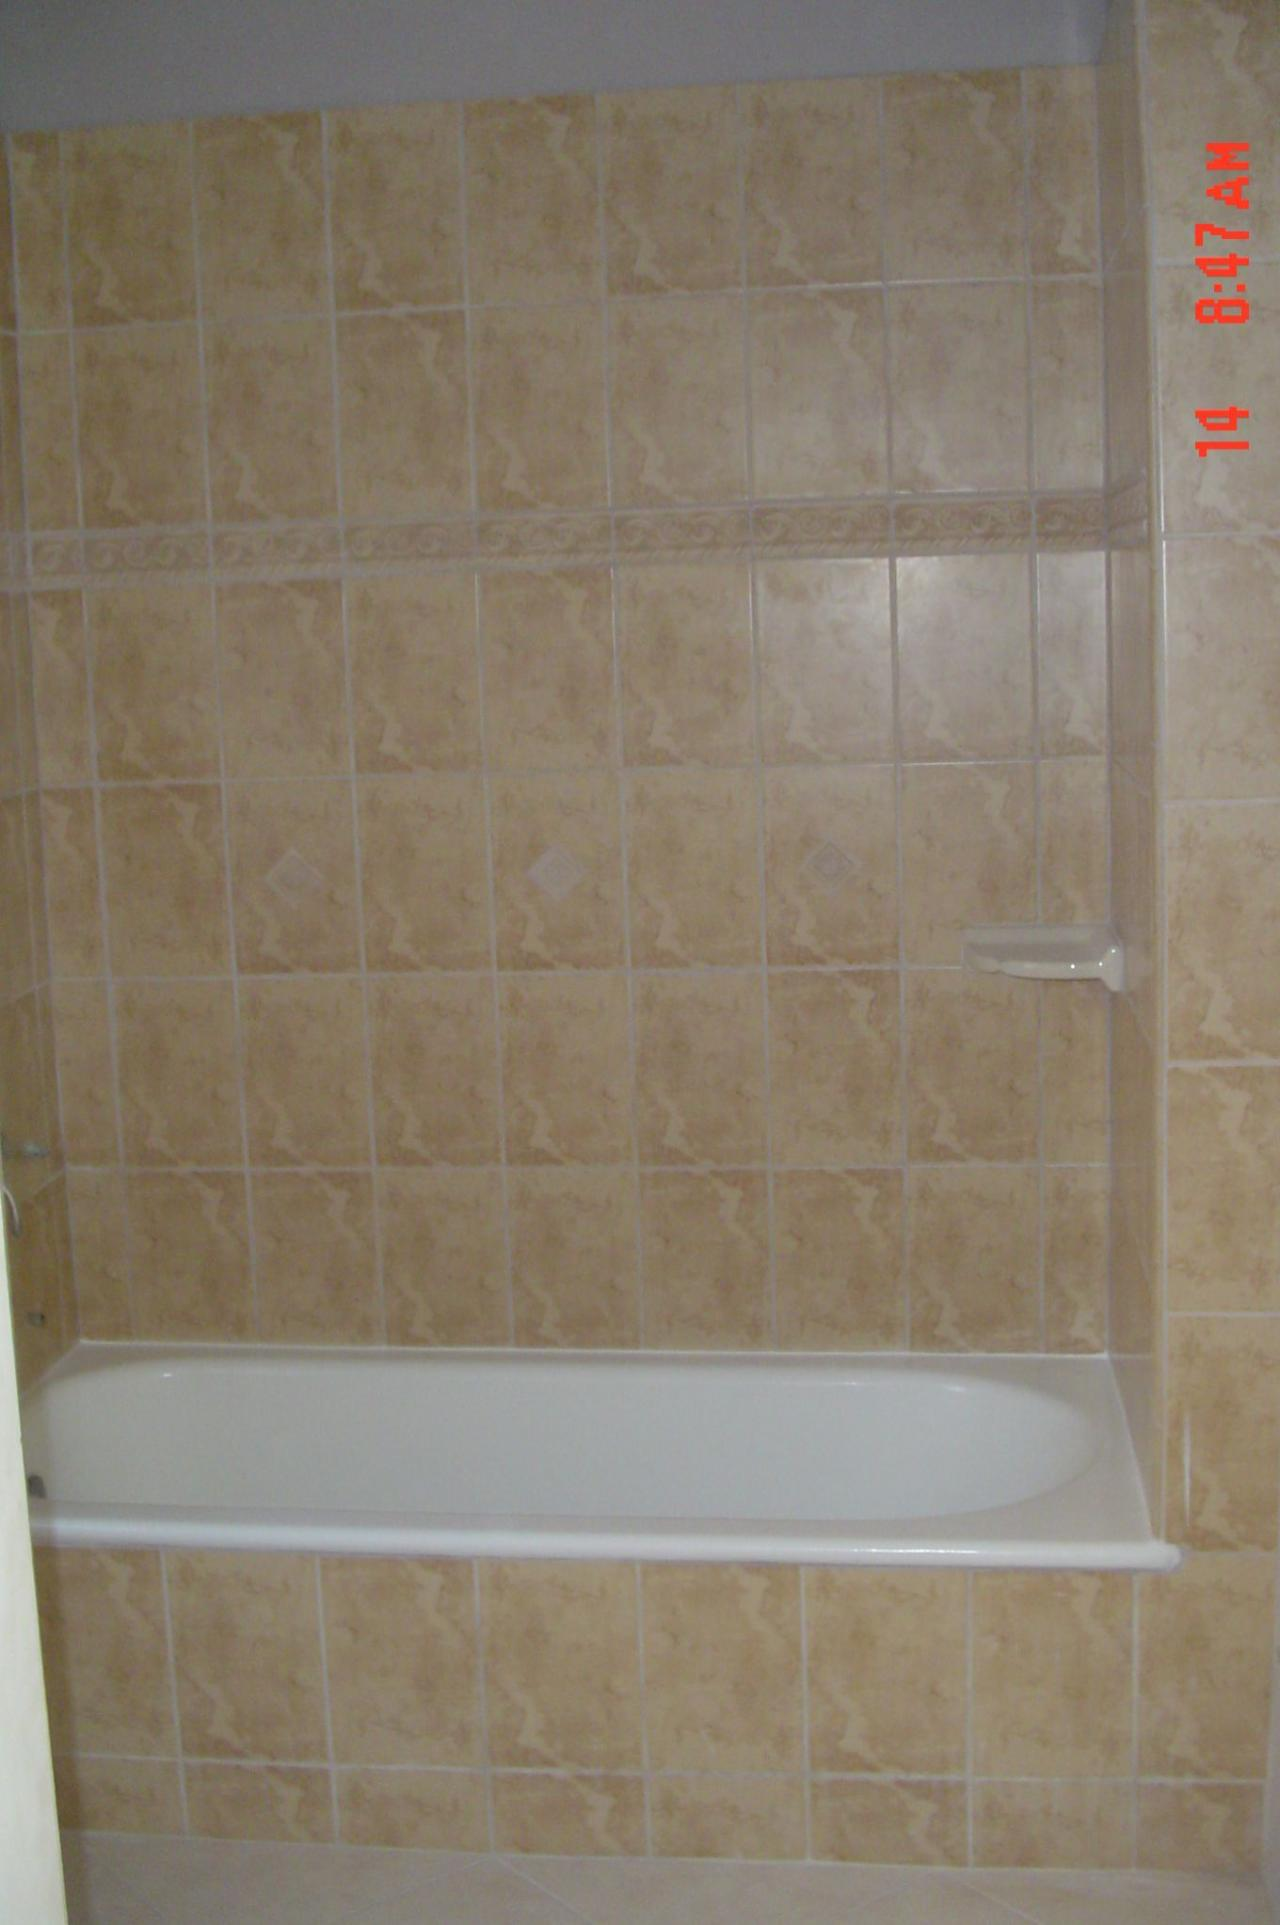 TUB SURROUND - COMPARE PRICES ON TUB SURROUND IN THE HOME